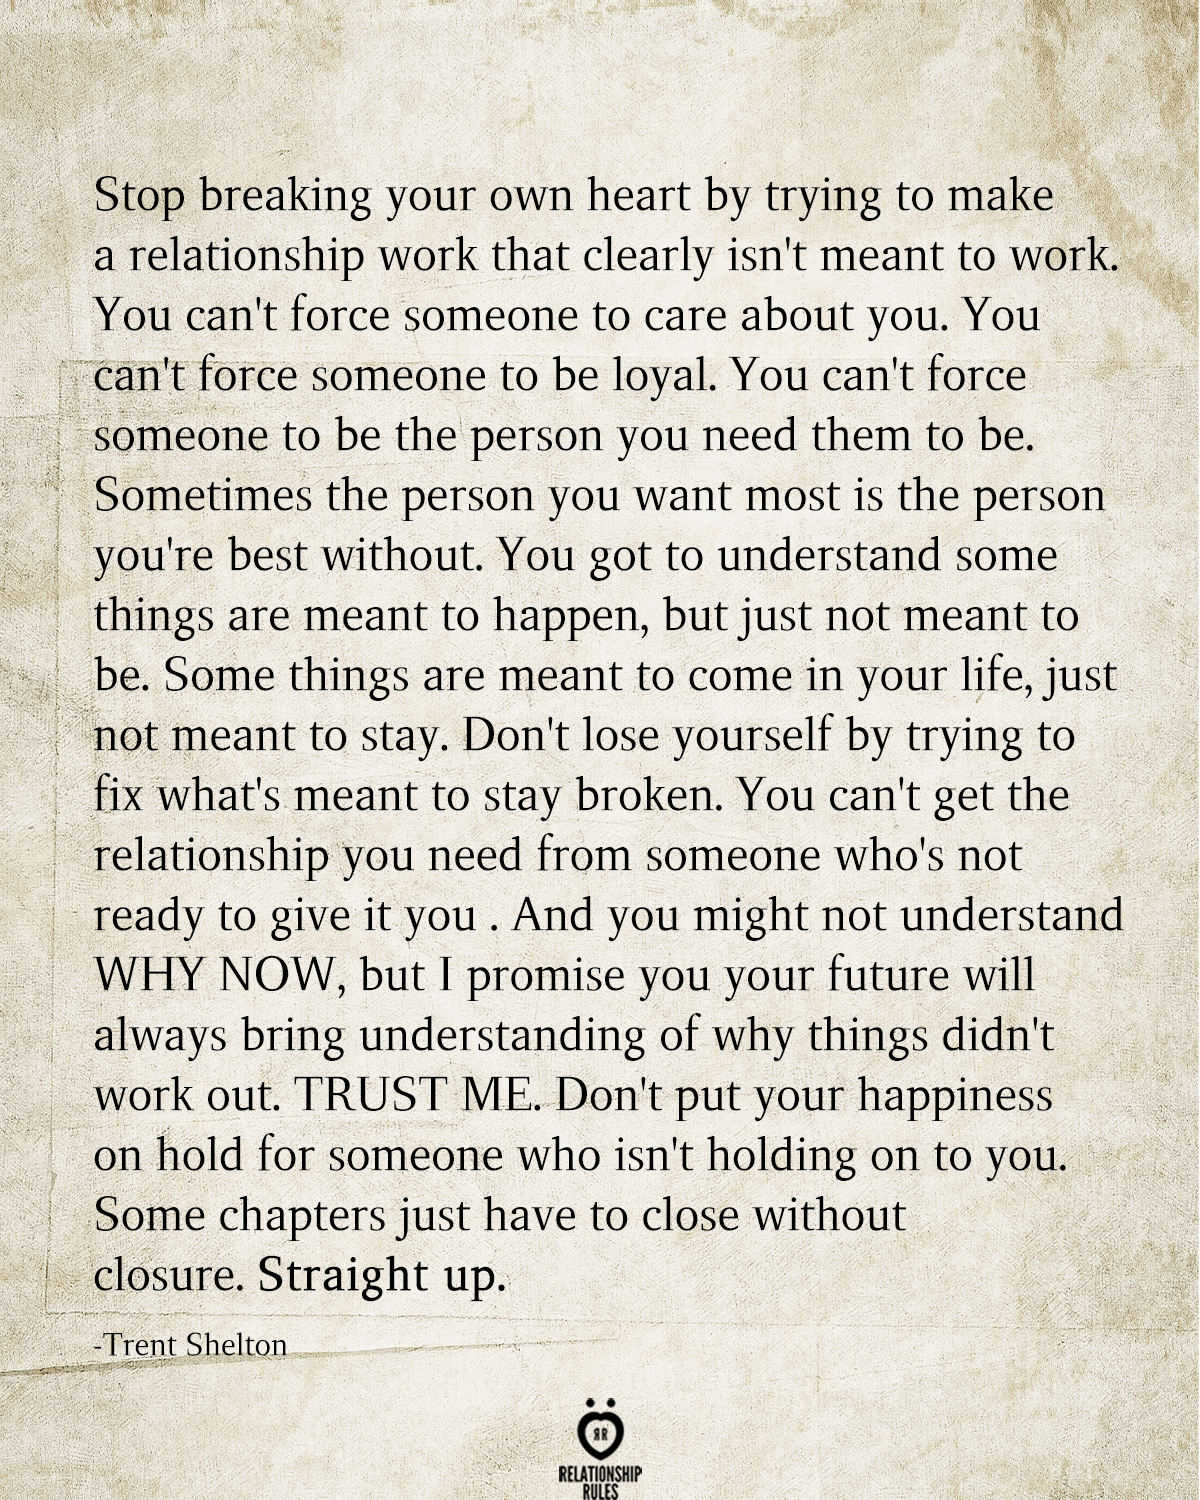 Stop Breaking Your Own Heart By Trying To Make A Relationship Work That Clearly Isn't Meant To Work